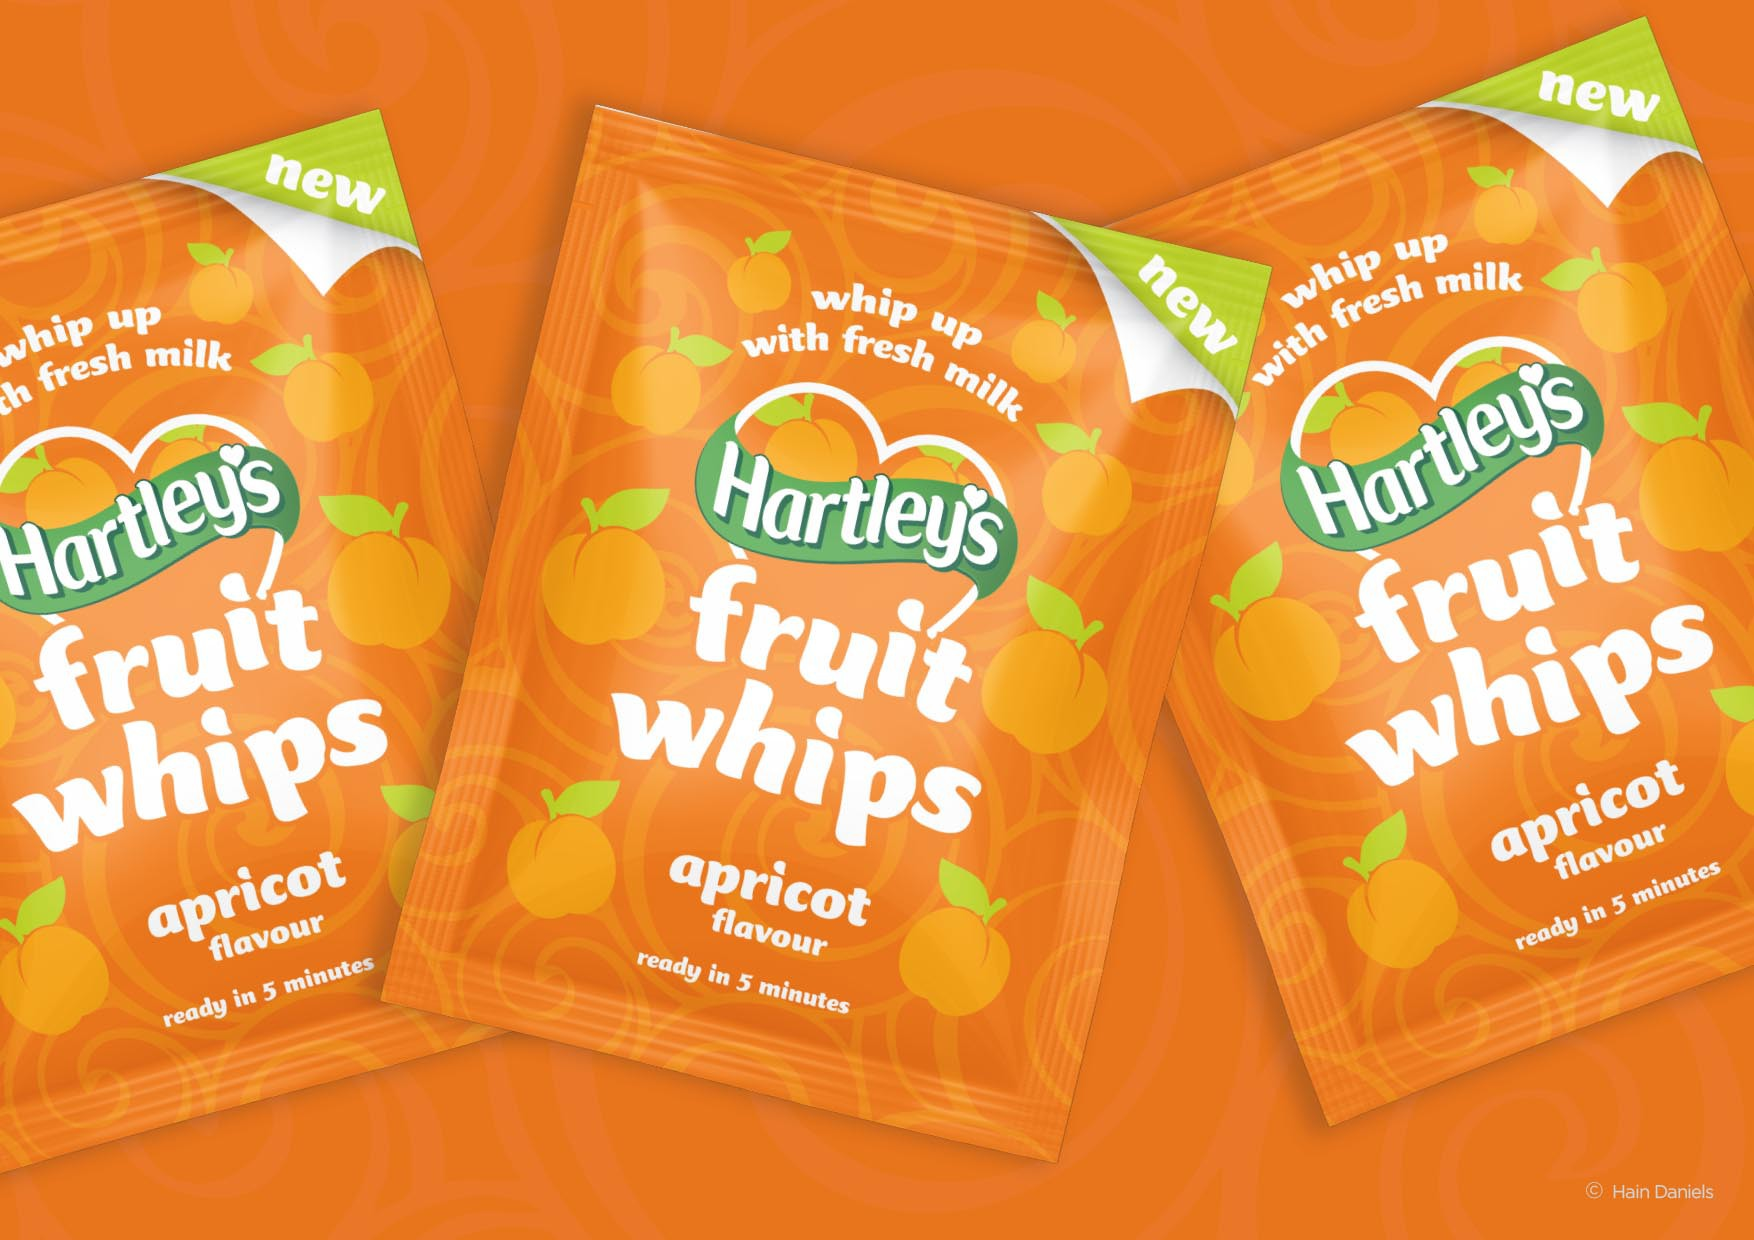 Hartley's | Fruit Whips